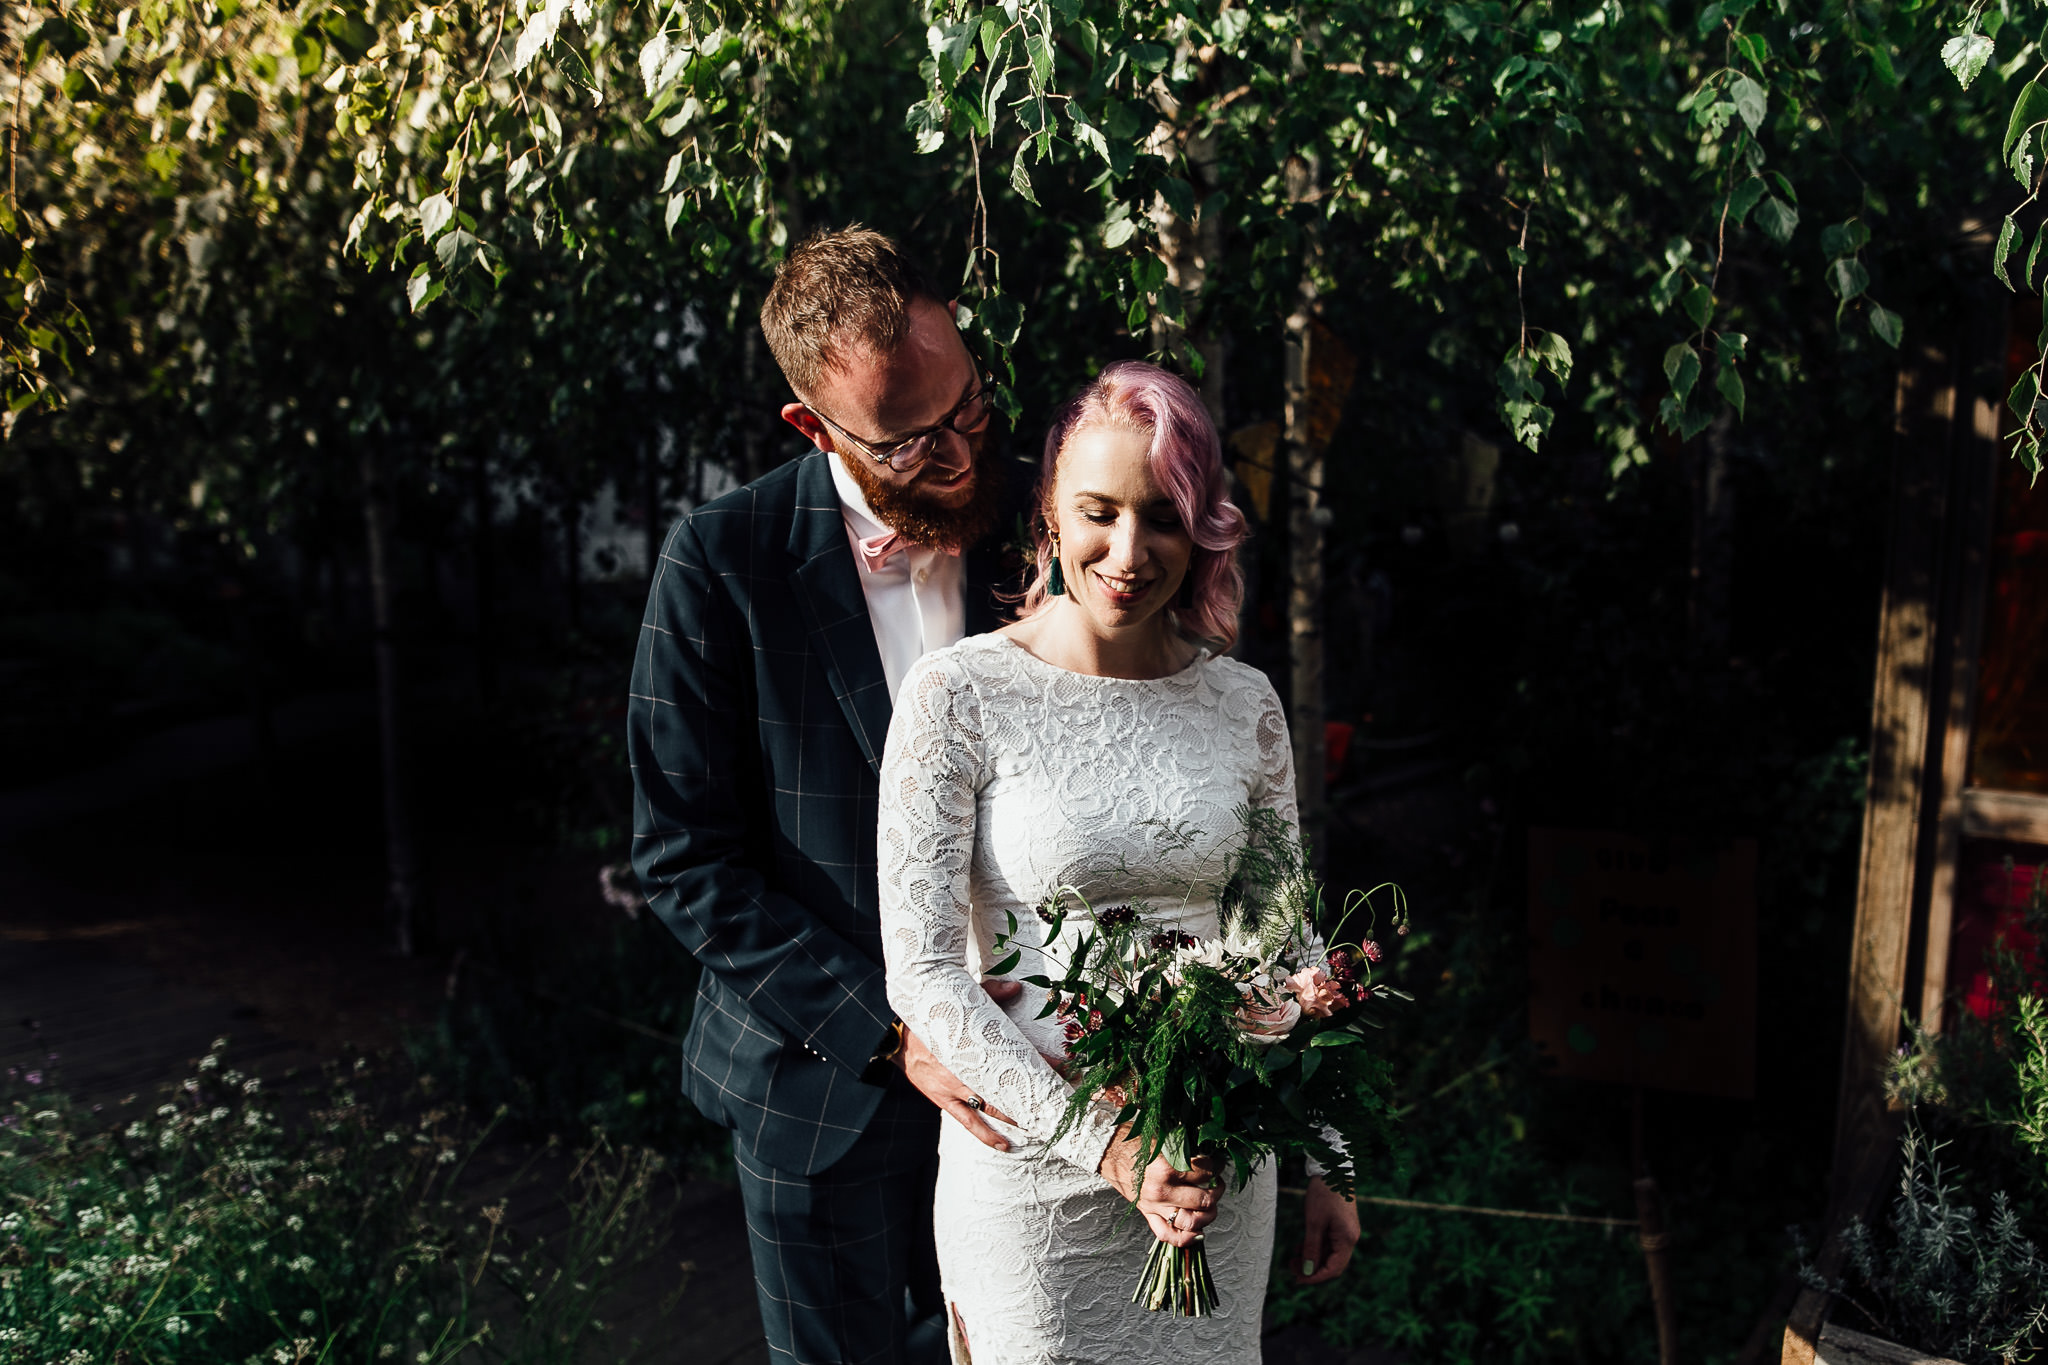 bride and groom photos at dalston curve garden